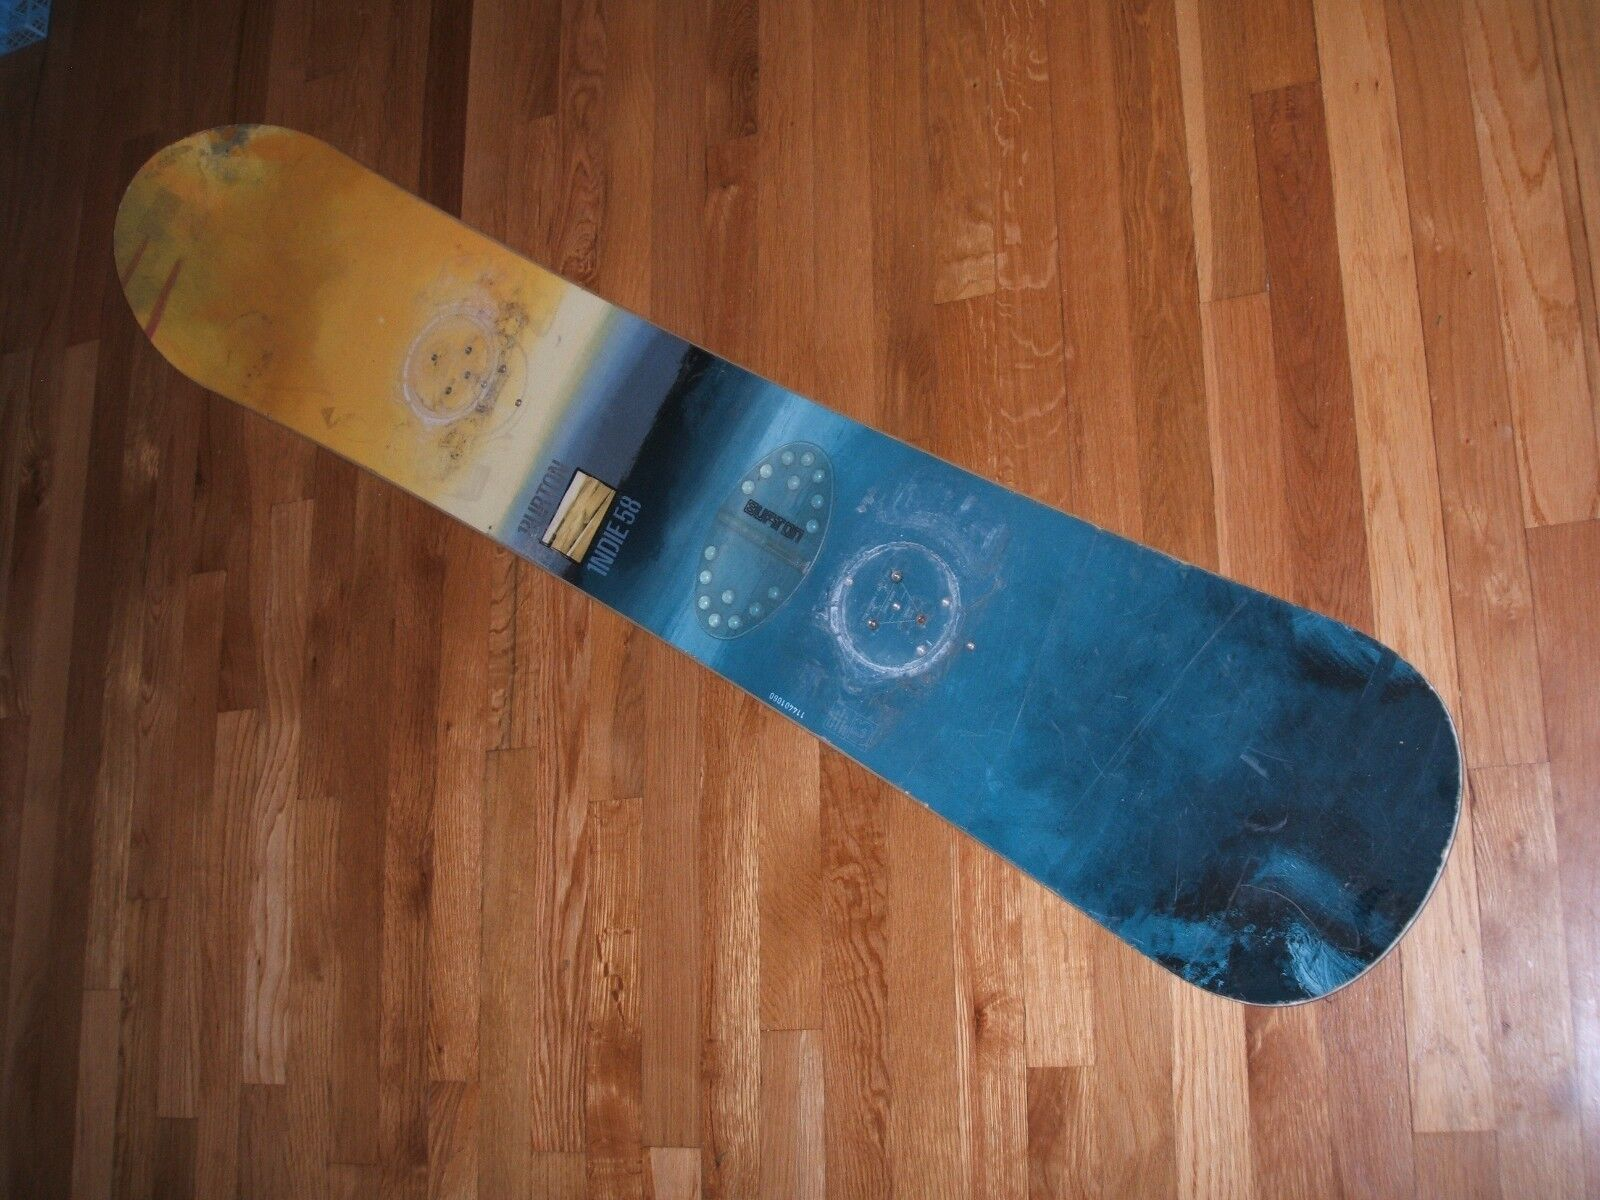 Burton Indie 158 cm Snowboard Fair Condition ONLY  90 Take A Look